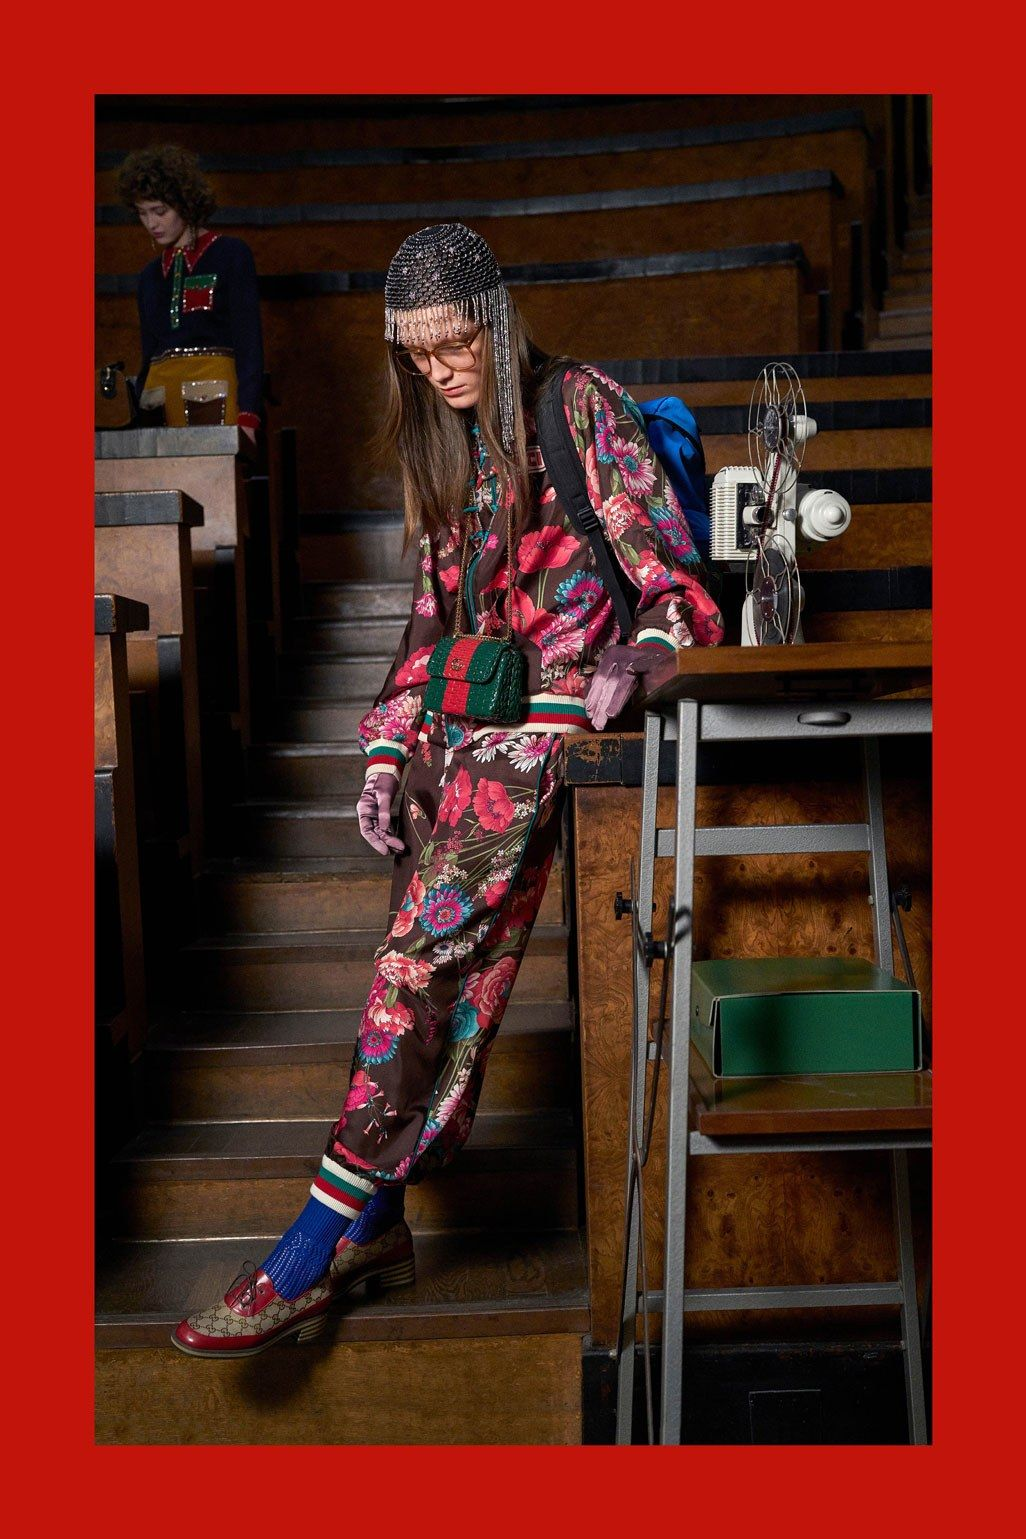 Discussion on this topic: Gucci Features Flamingos In Pre-Fall 2019 Campaign, gucci-features-flamingos-in-pre-fall-2019-campaign/